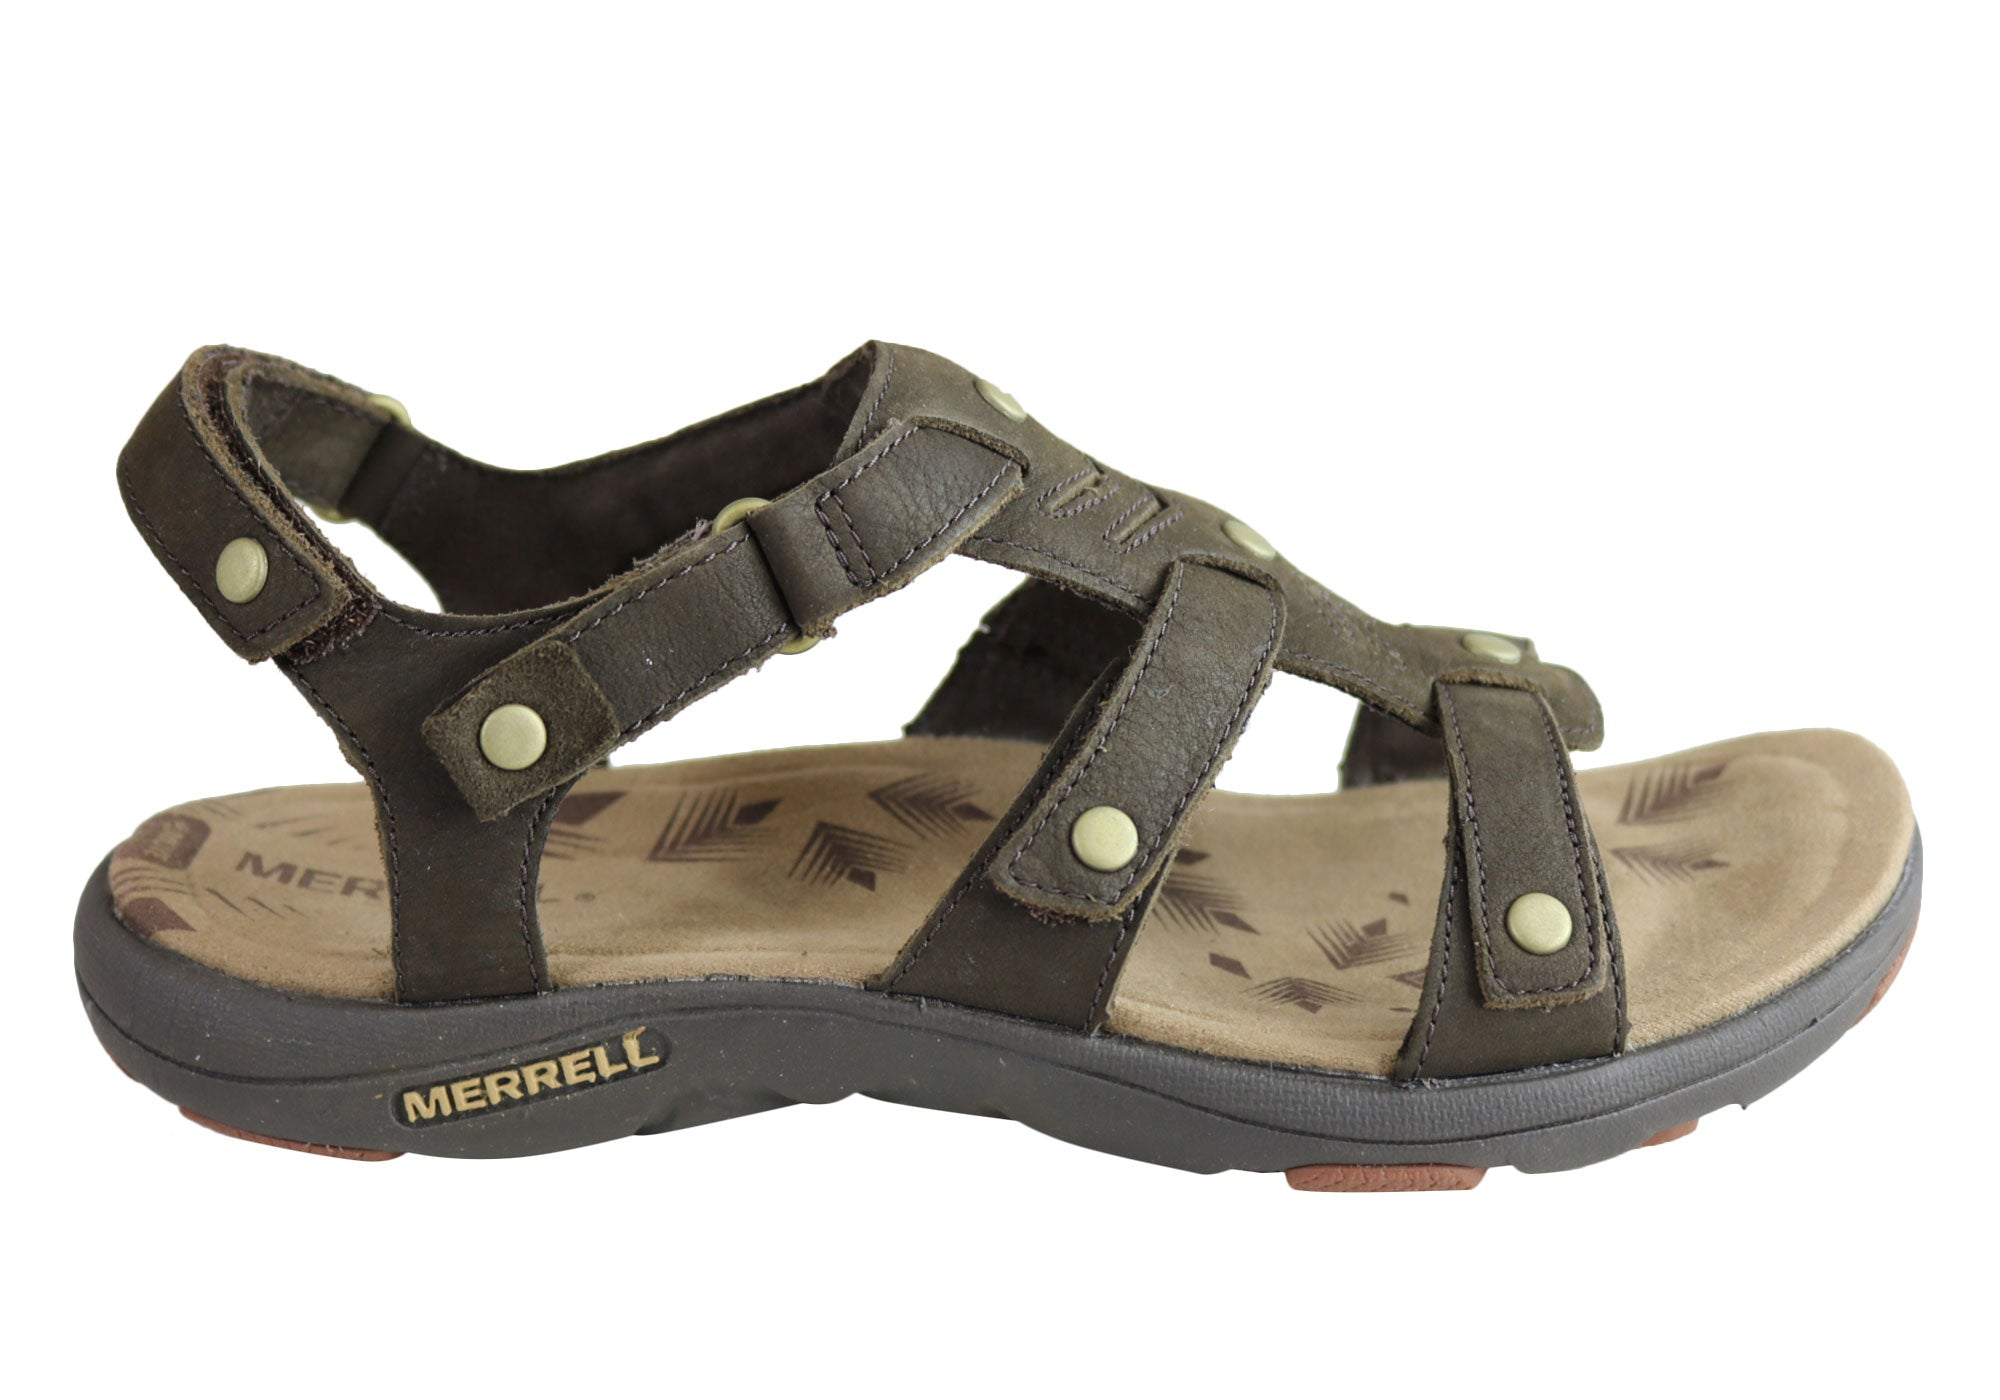 cbd32ce03 Merrell Womens Comfort Flat Supportive Adhera Three Strap II Sandals ...